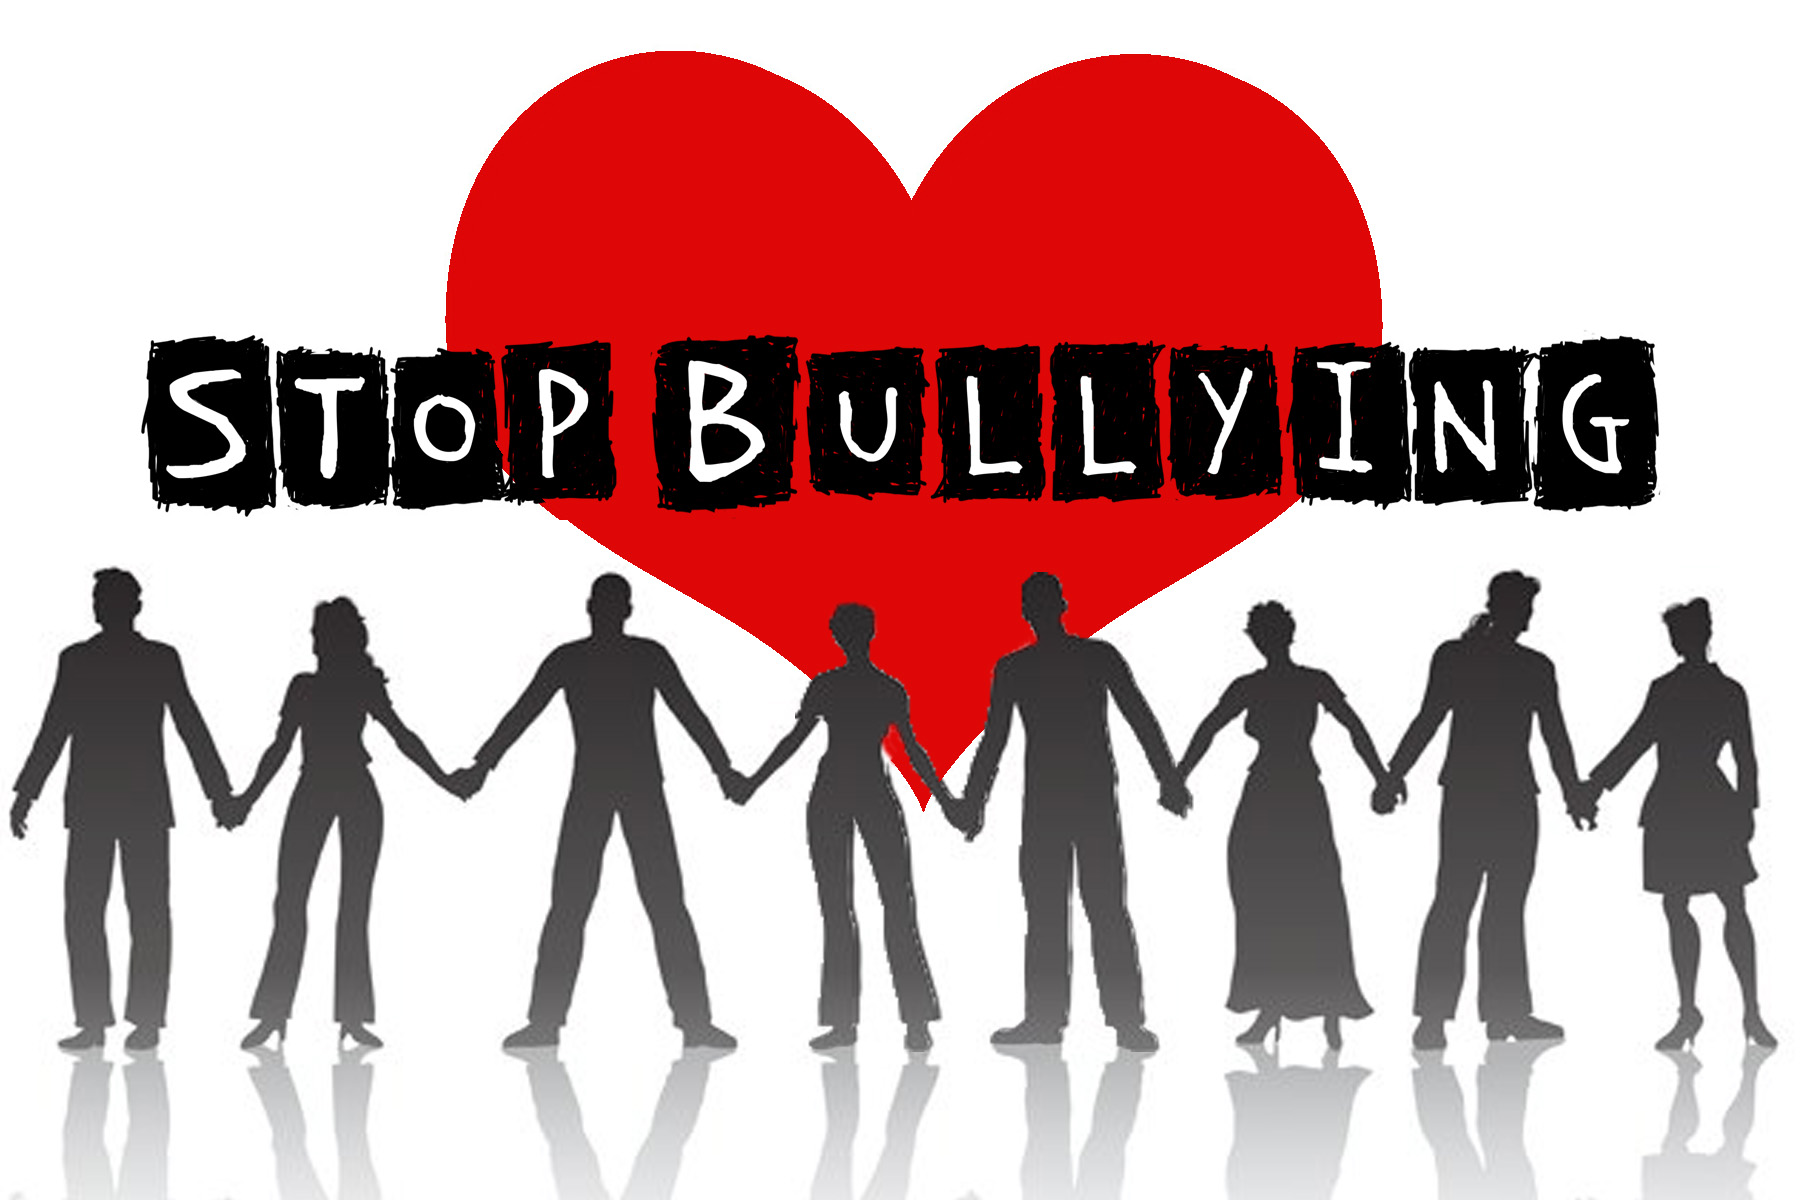 Exceptionnel Stop Bullying Now Project | Our Canada Project WH75